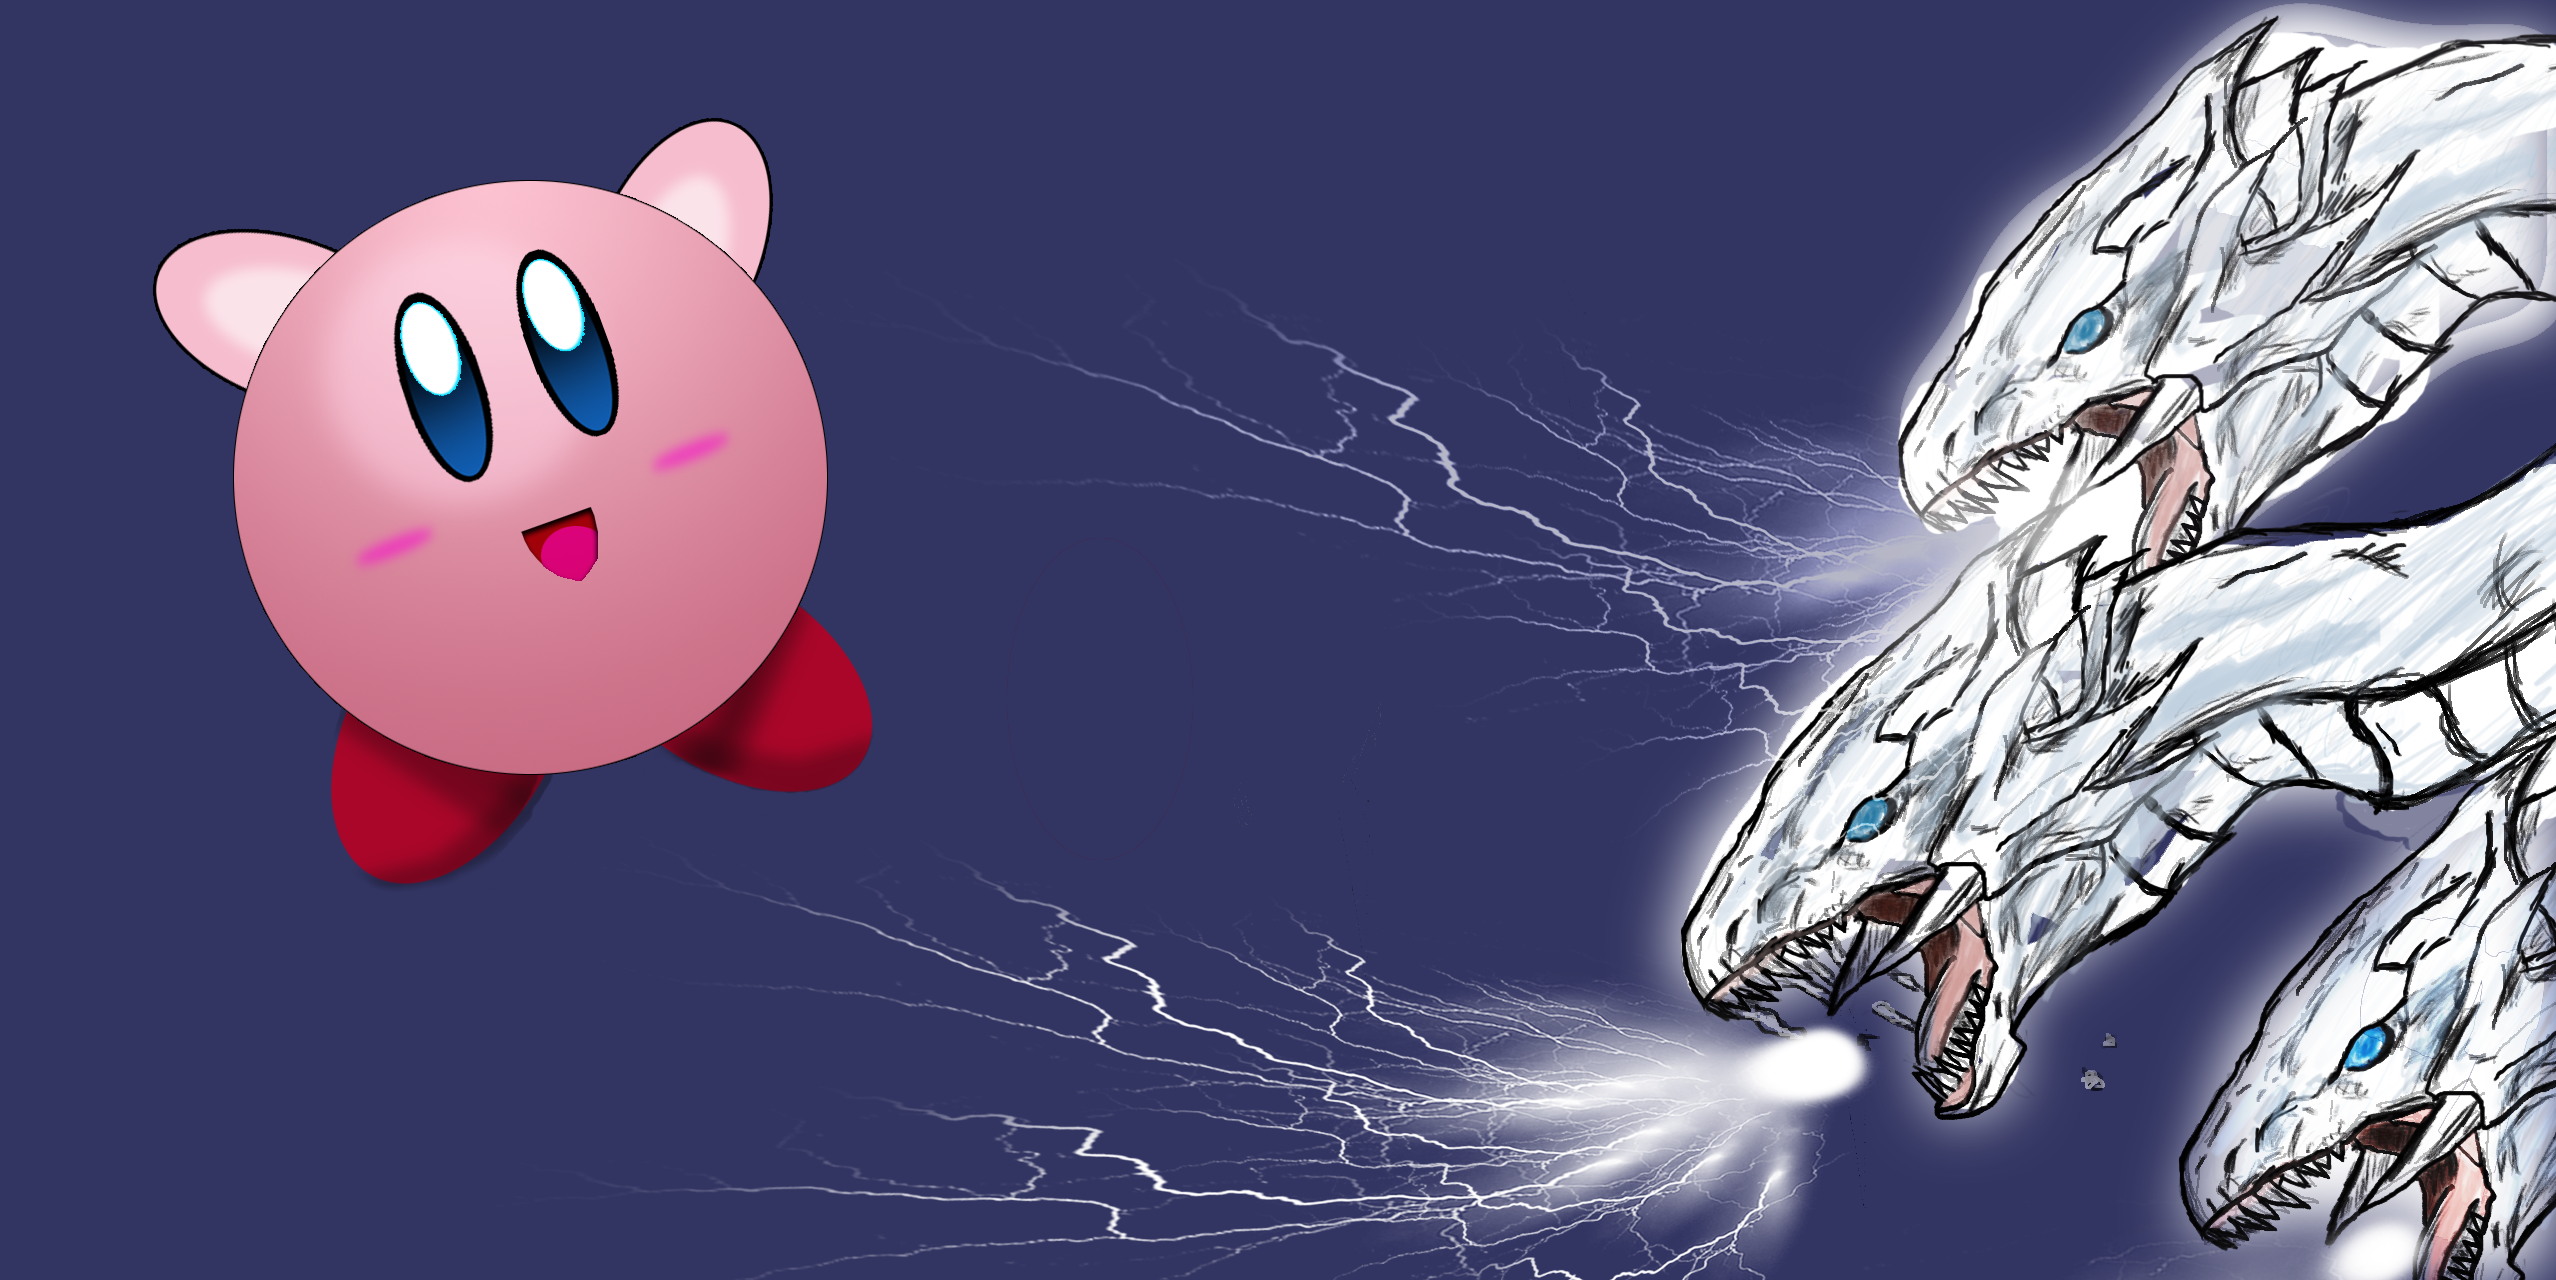 blue eyes vs kirby